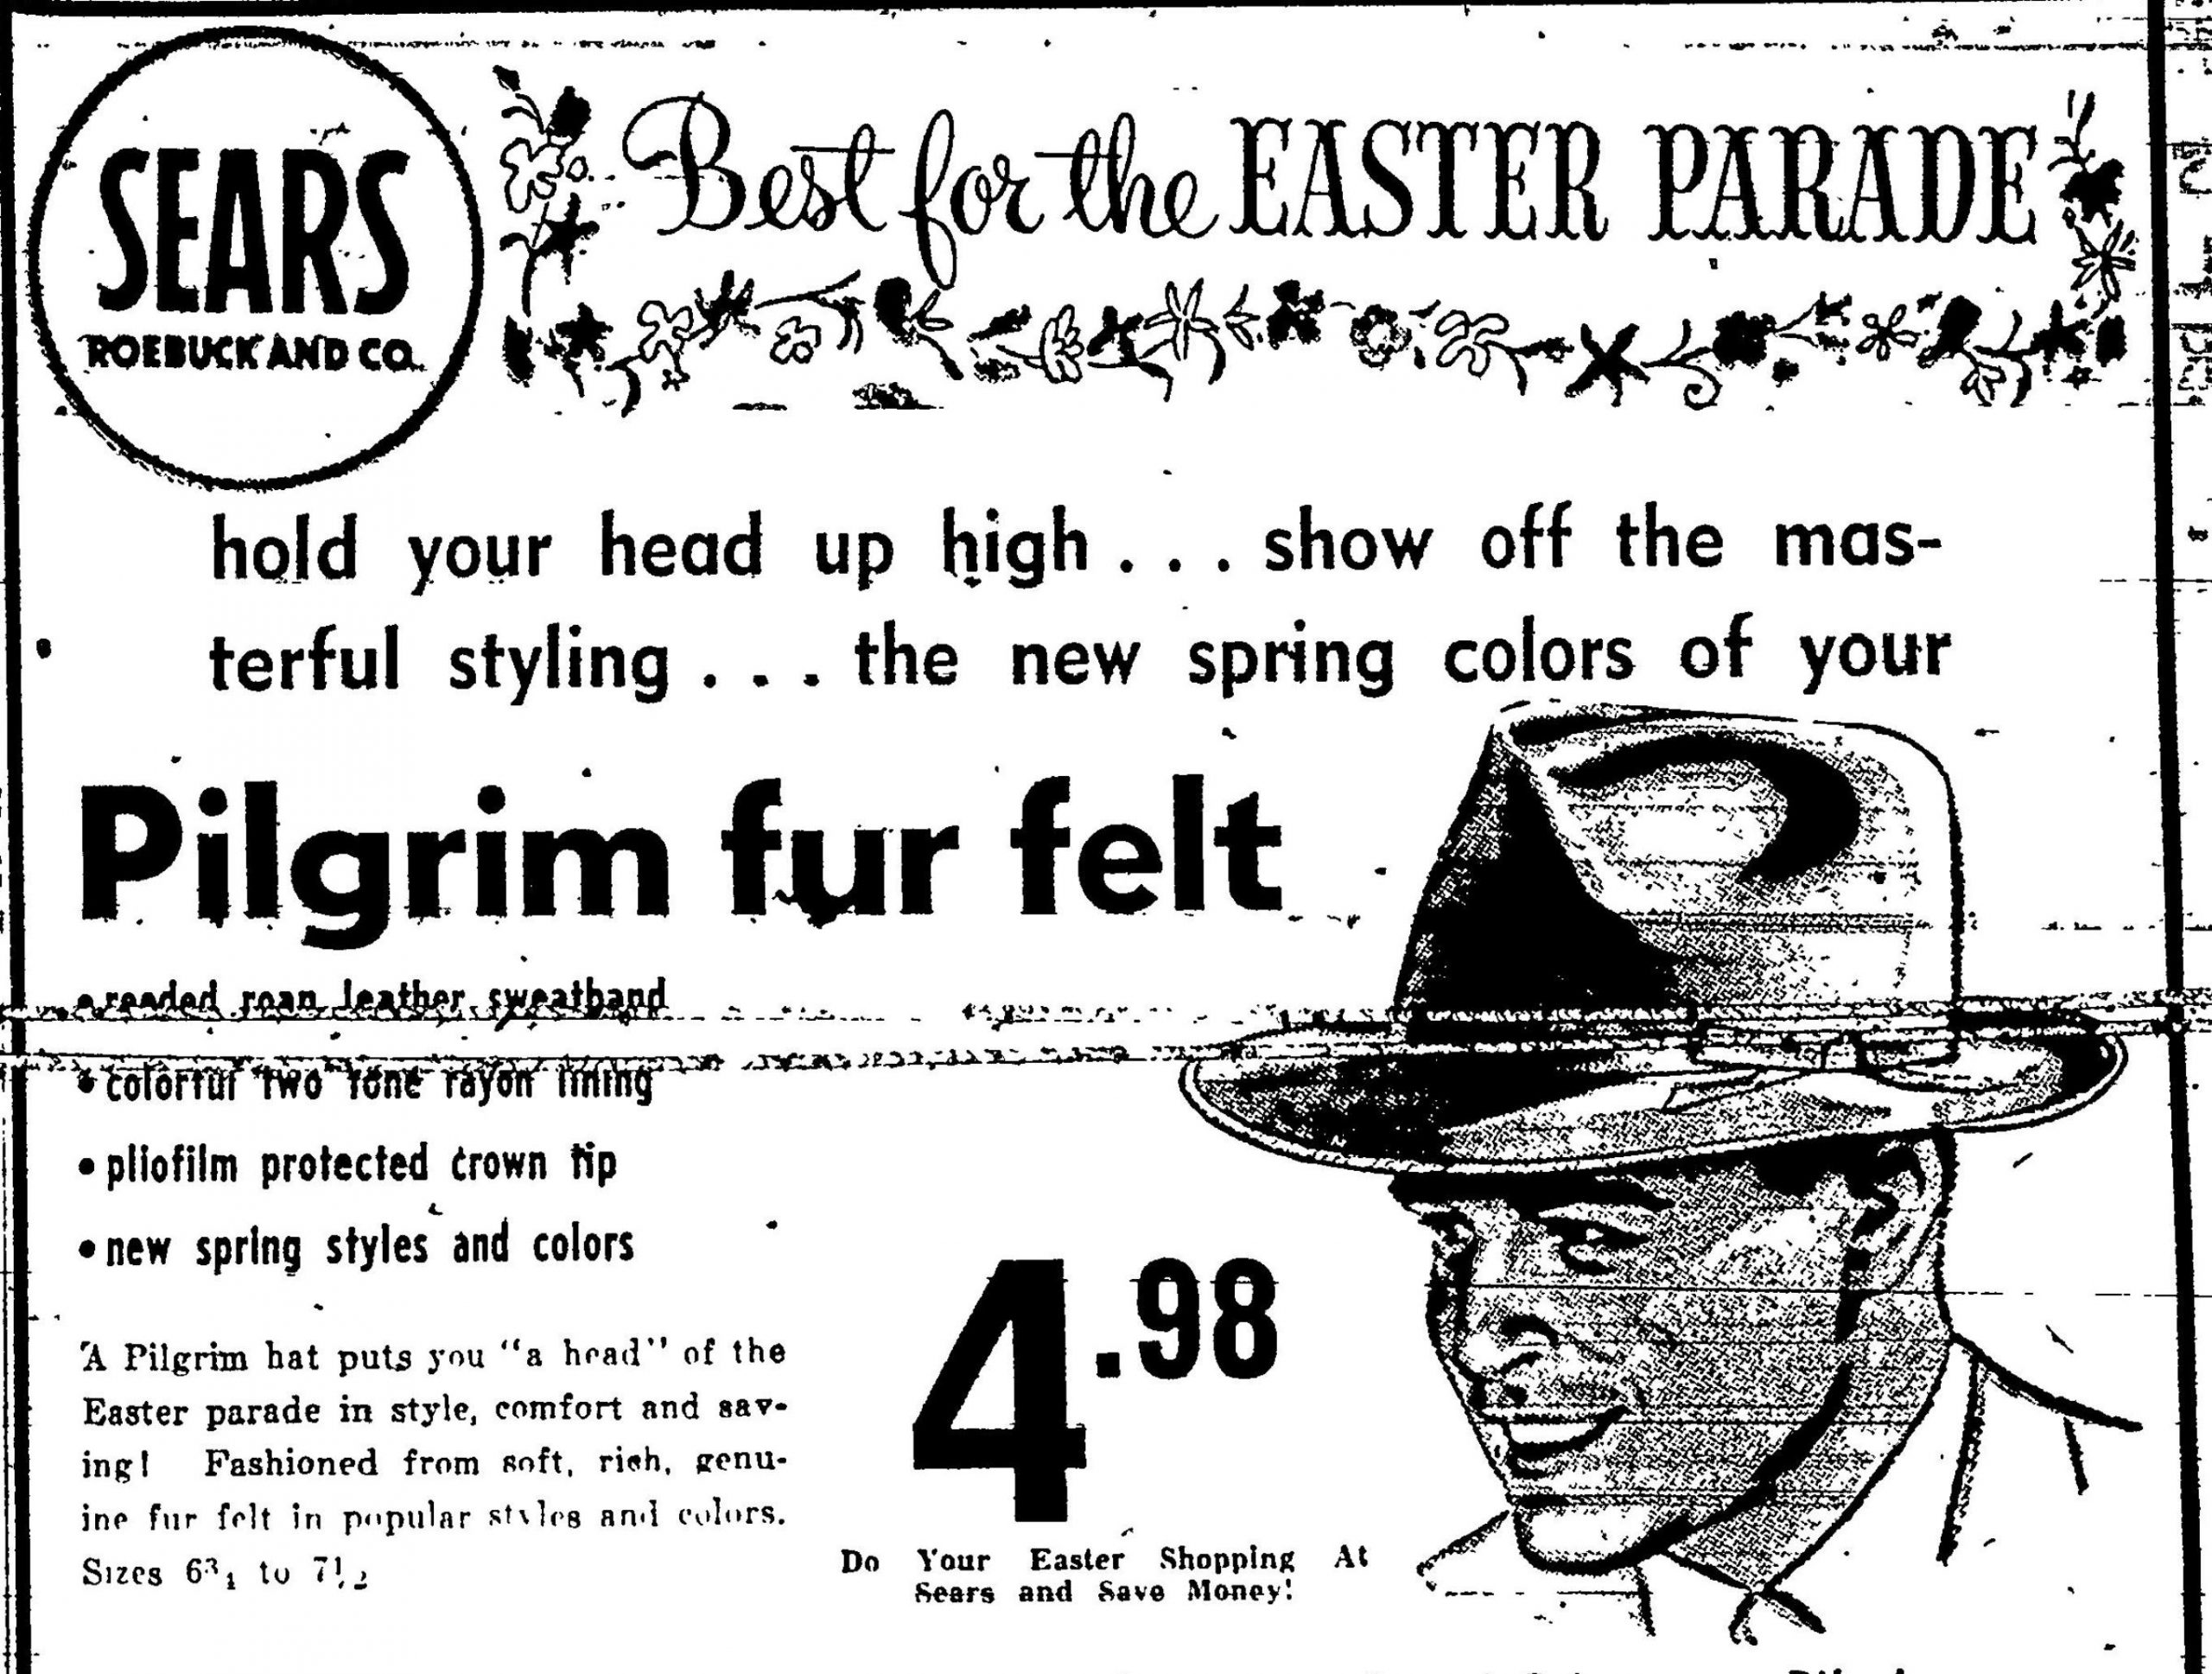 Sears Roebuck and Co. - Wheeling Intelligencer, March 23, 1951